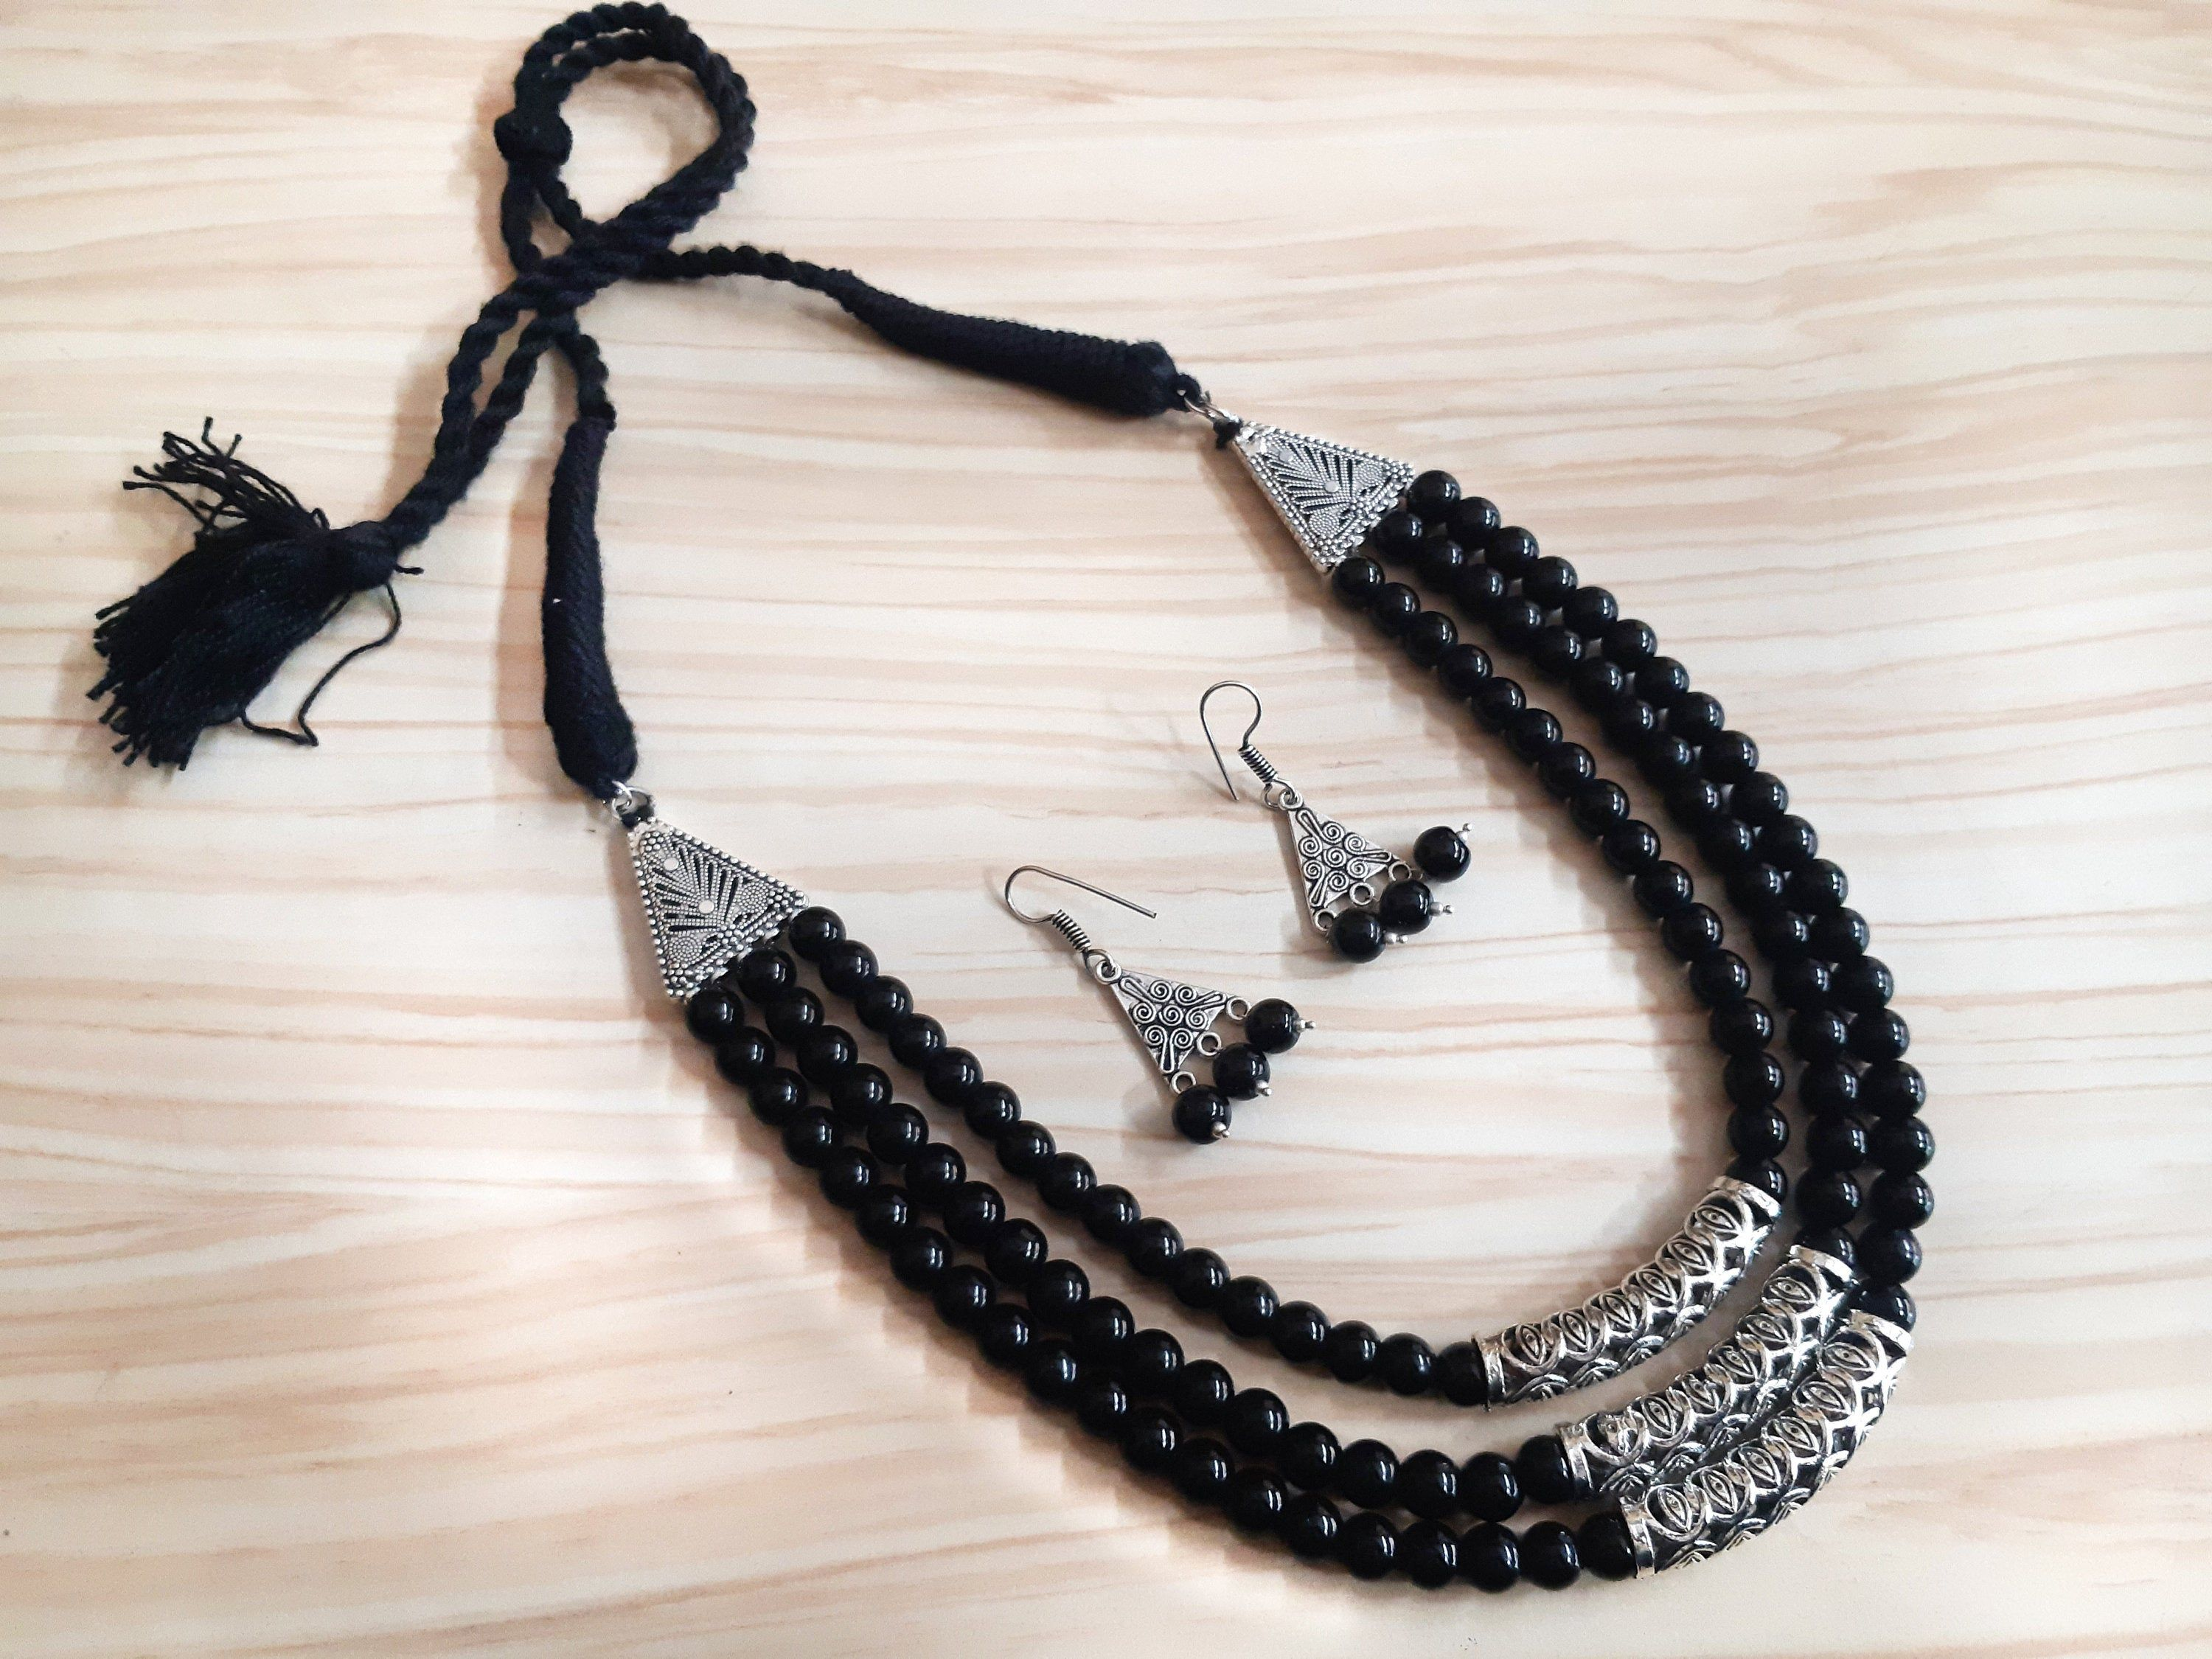 Oxidised silver bead and glass bead necklace set with Tibetan pendant German Silver bead necklace